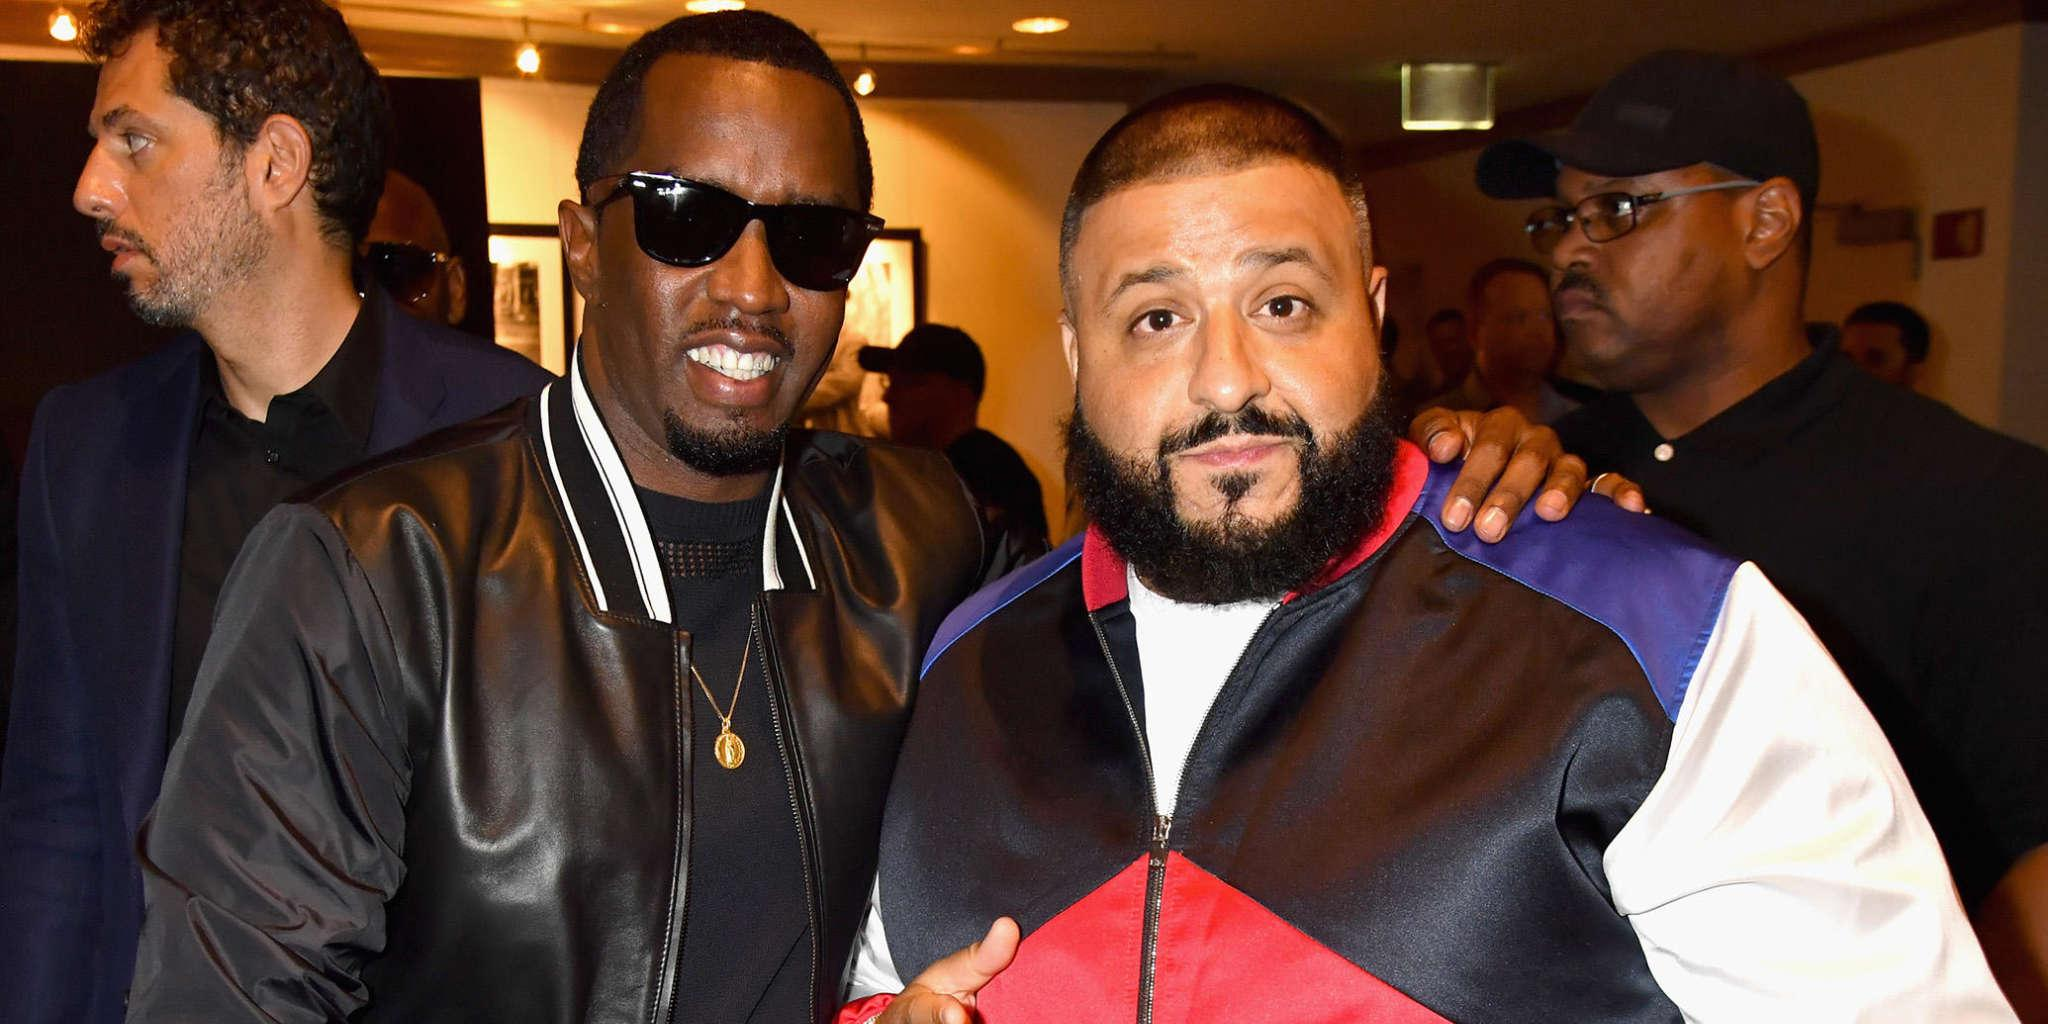 Diddy Confirmed 'Making The Band' In 2020 - He's In 'Semi-Retirement' From Music